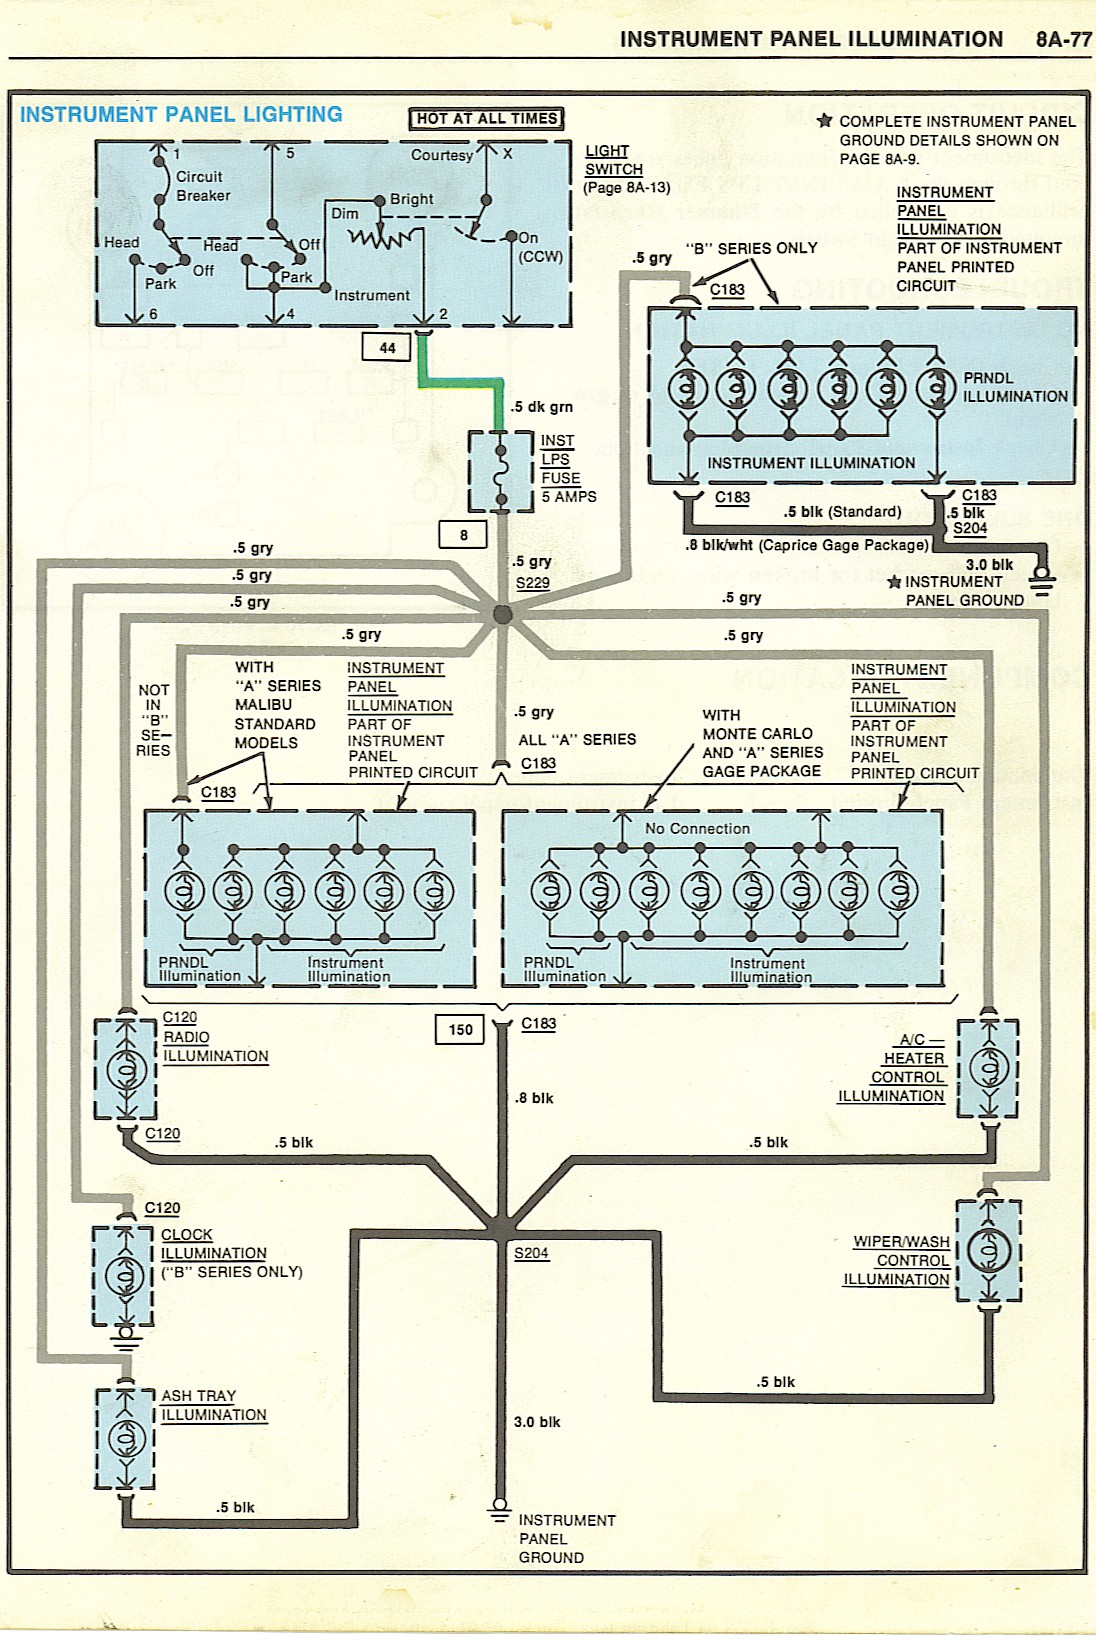 Wiring diagram power window proton wira somurich